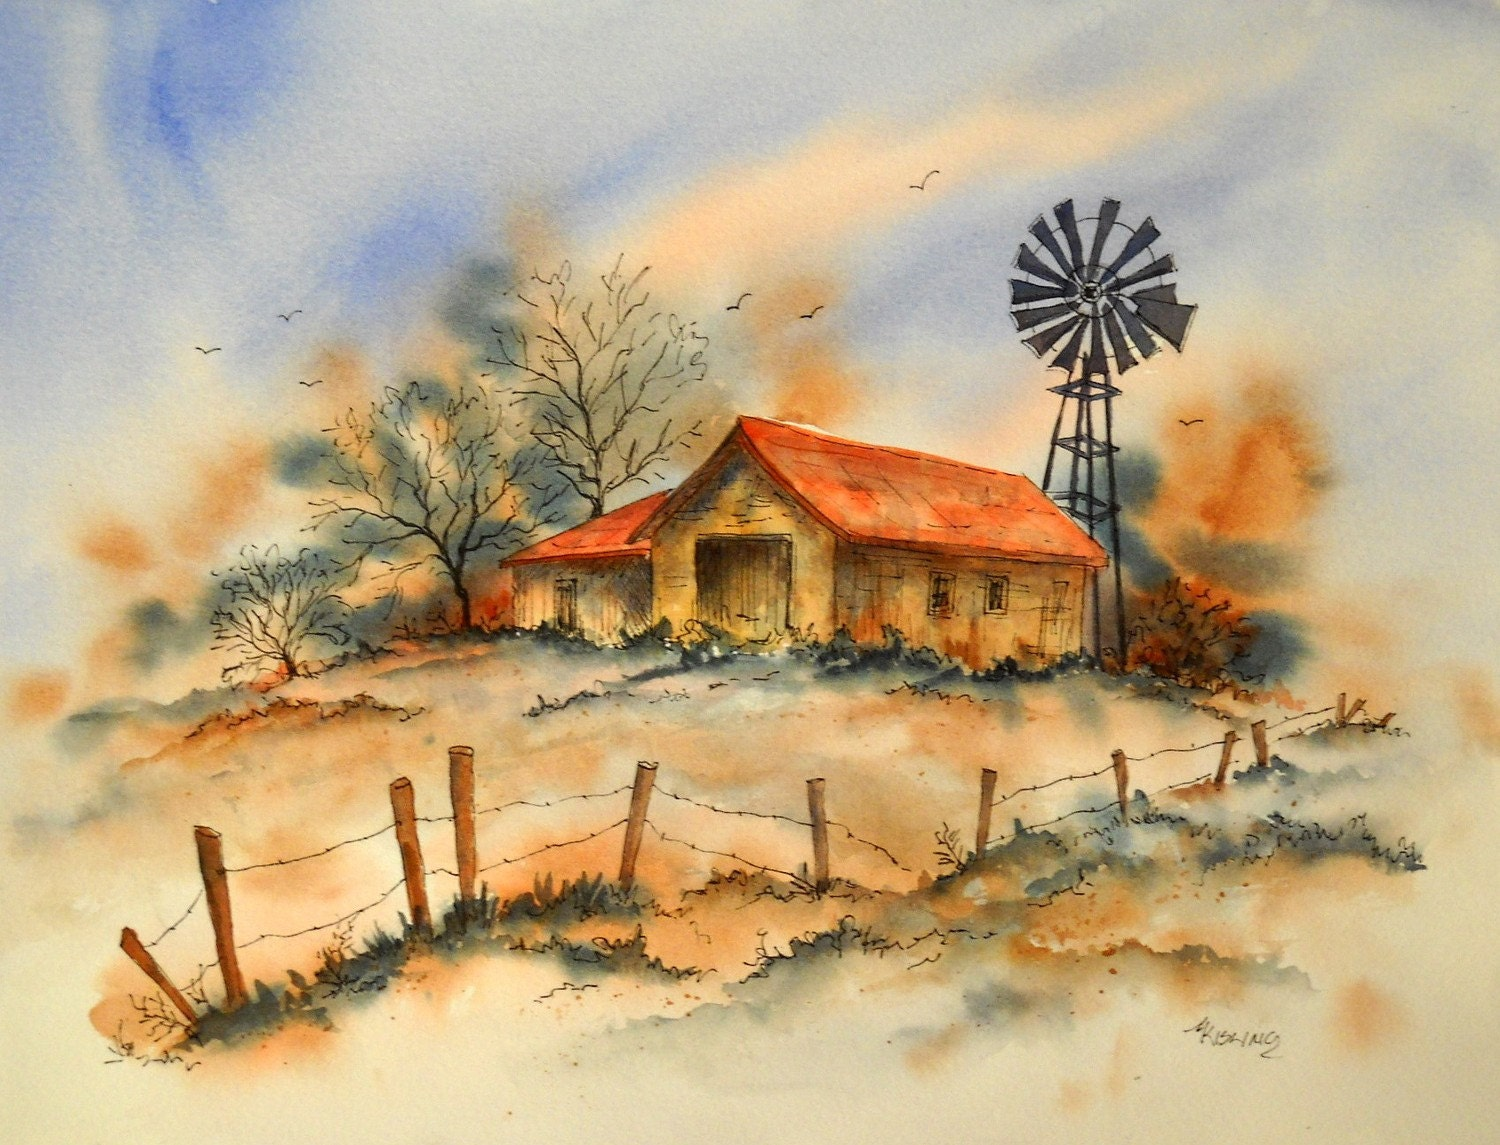 STUDIO SALE Ink Drawing and Watercolor of Old Building and